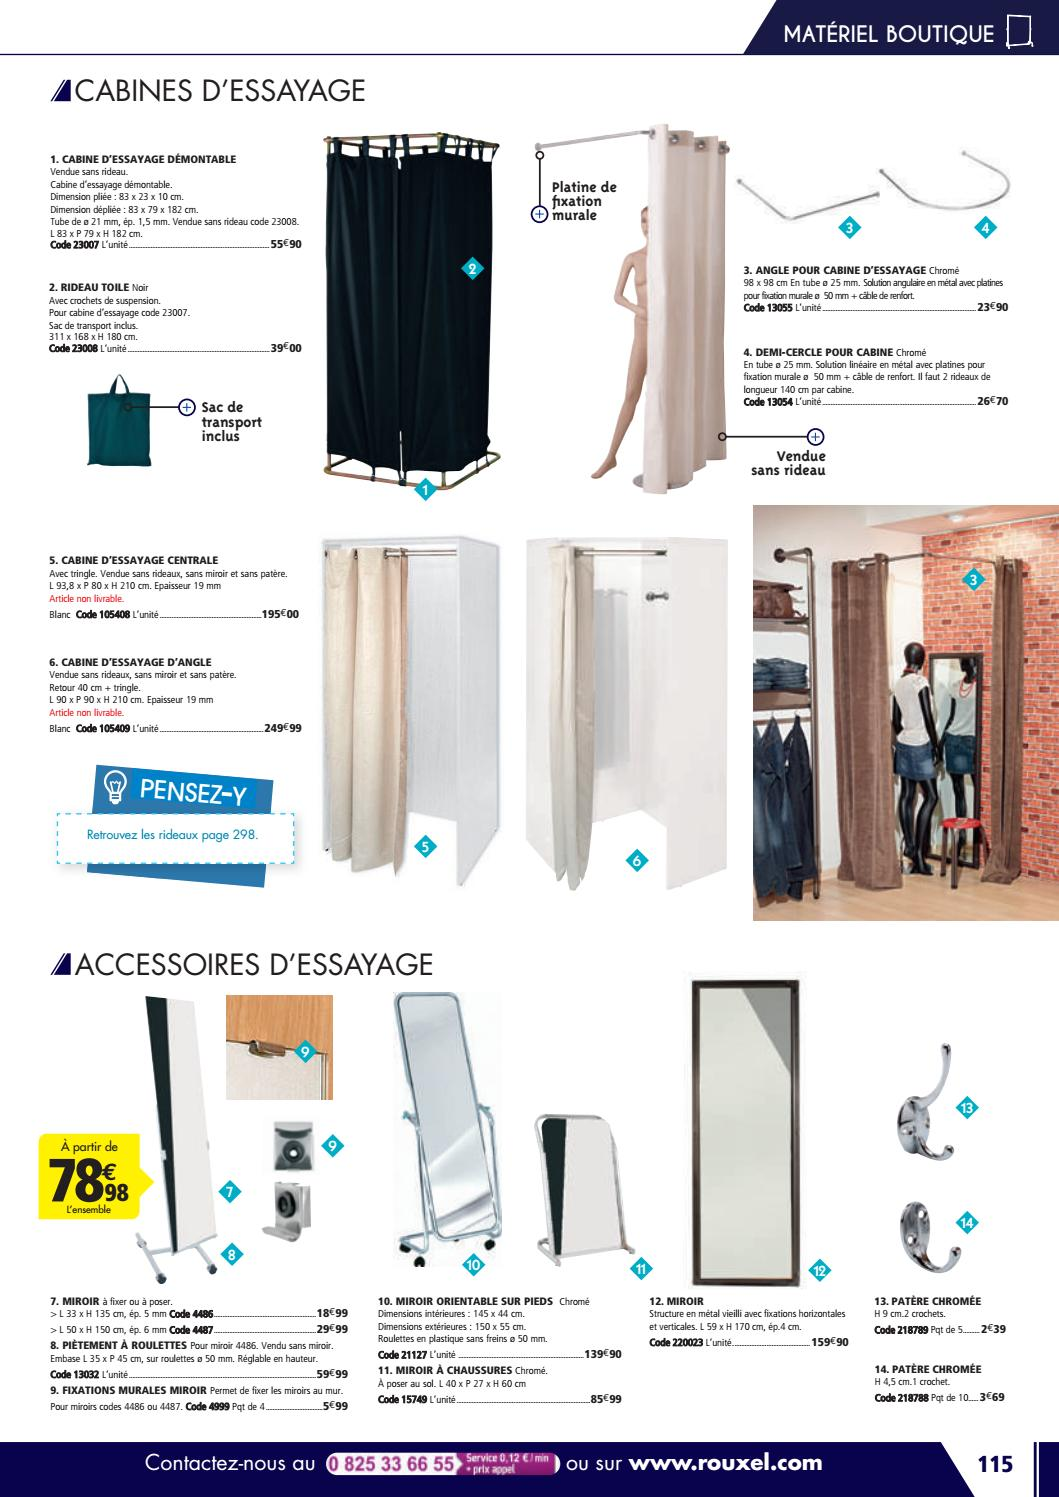 Cabine D Essayage Dimension catalogue général rouxel 2018 by rouxel - issuu